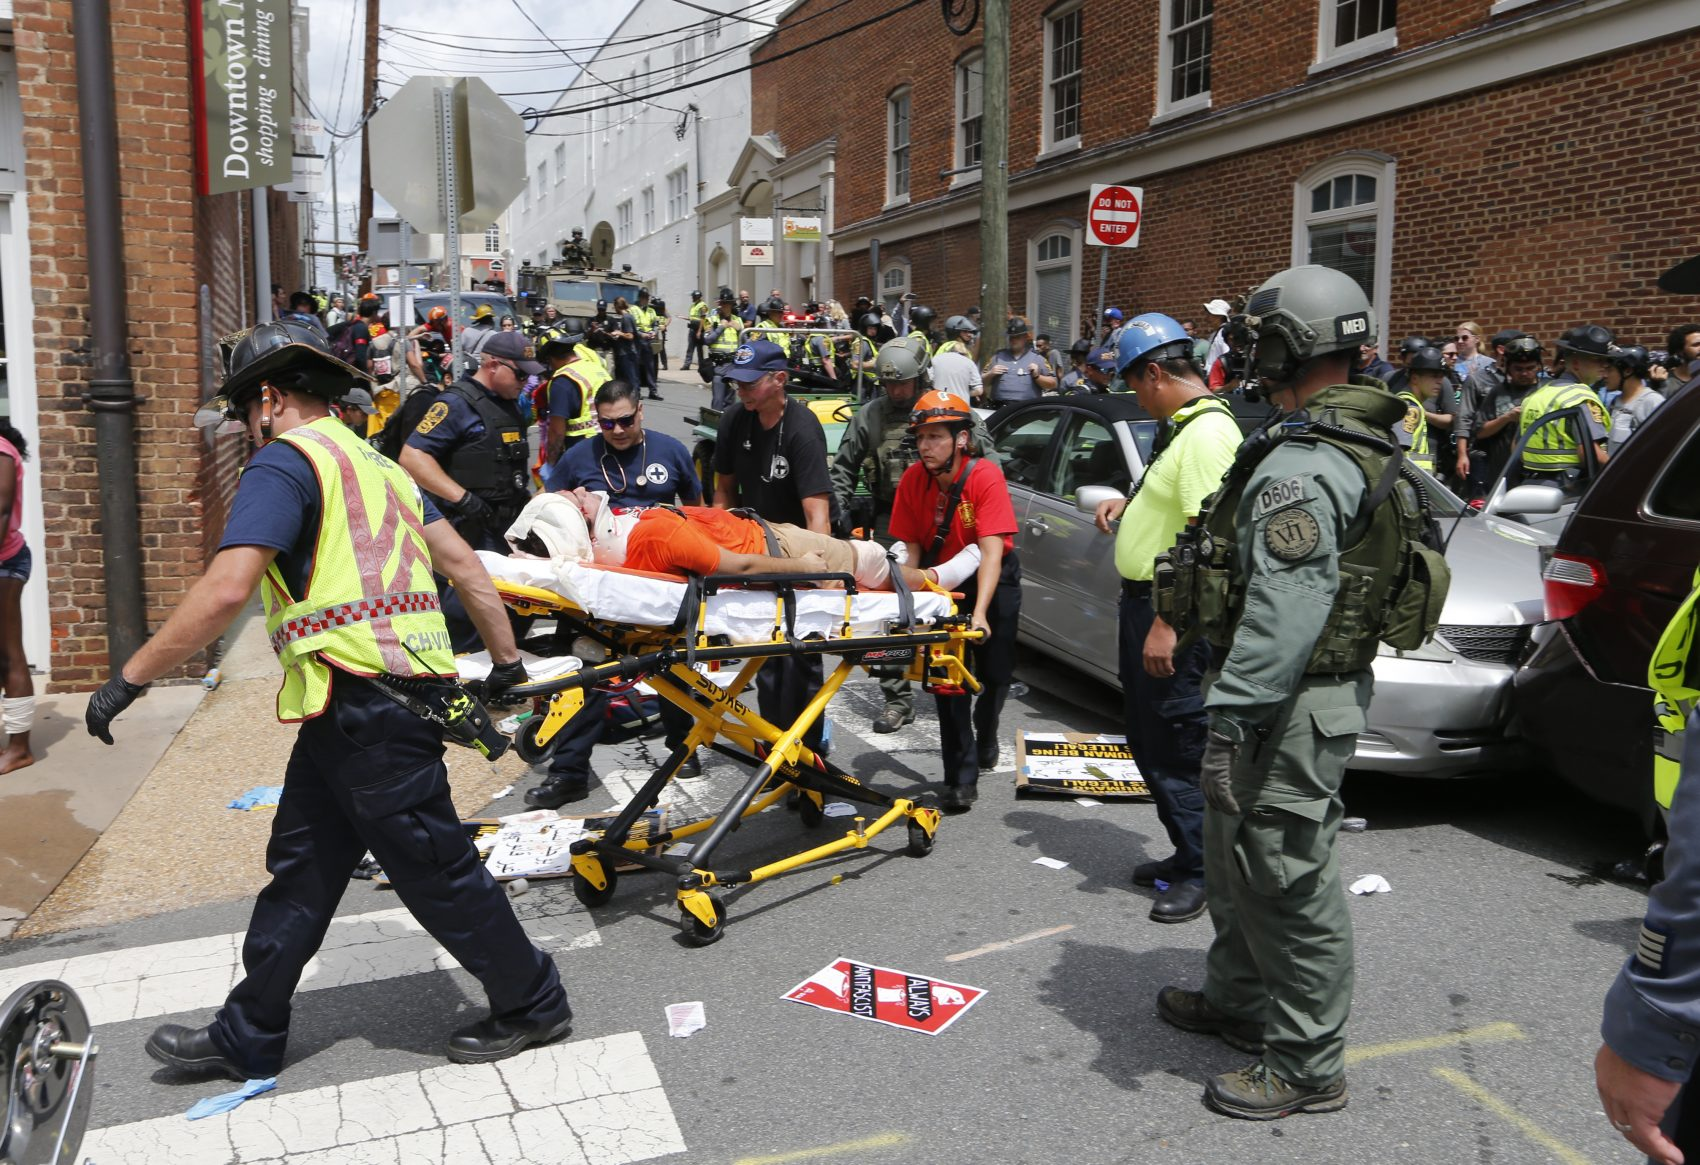 Rescue personnel help injured people after a car ran into a large group of protesters after an white nationalist rally in Charlottesville, Va., Saturday, Aug. 12, 2017. (Steve Helber/AP)